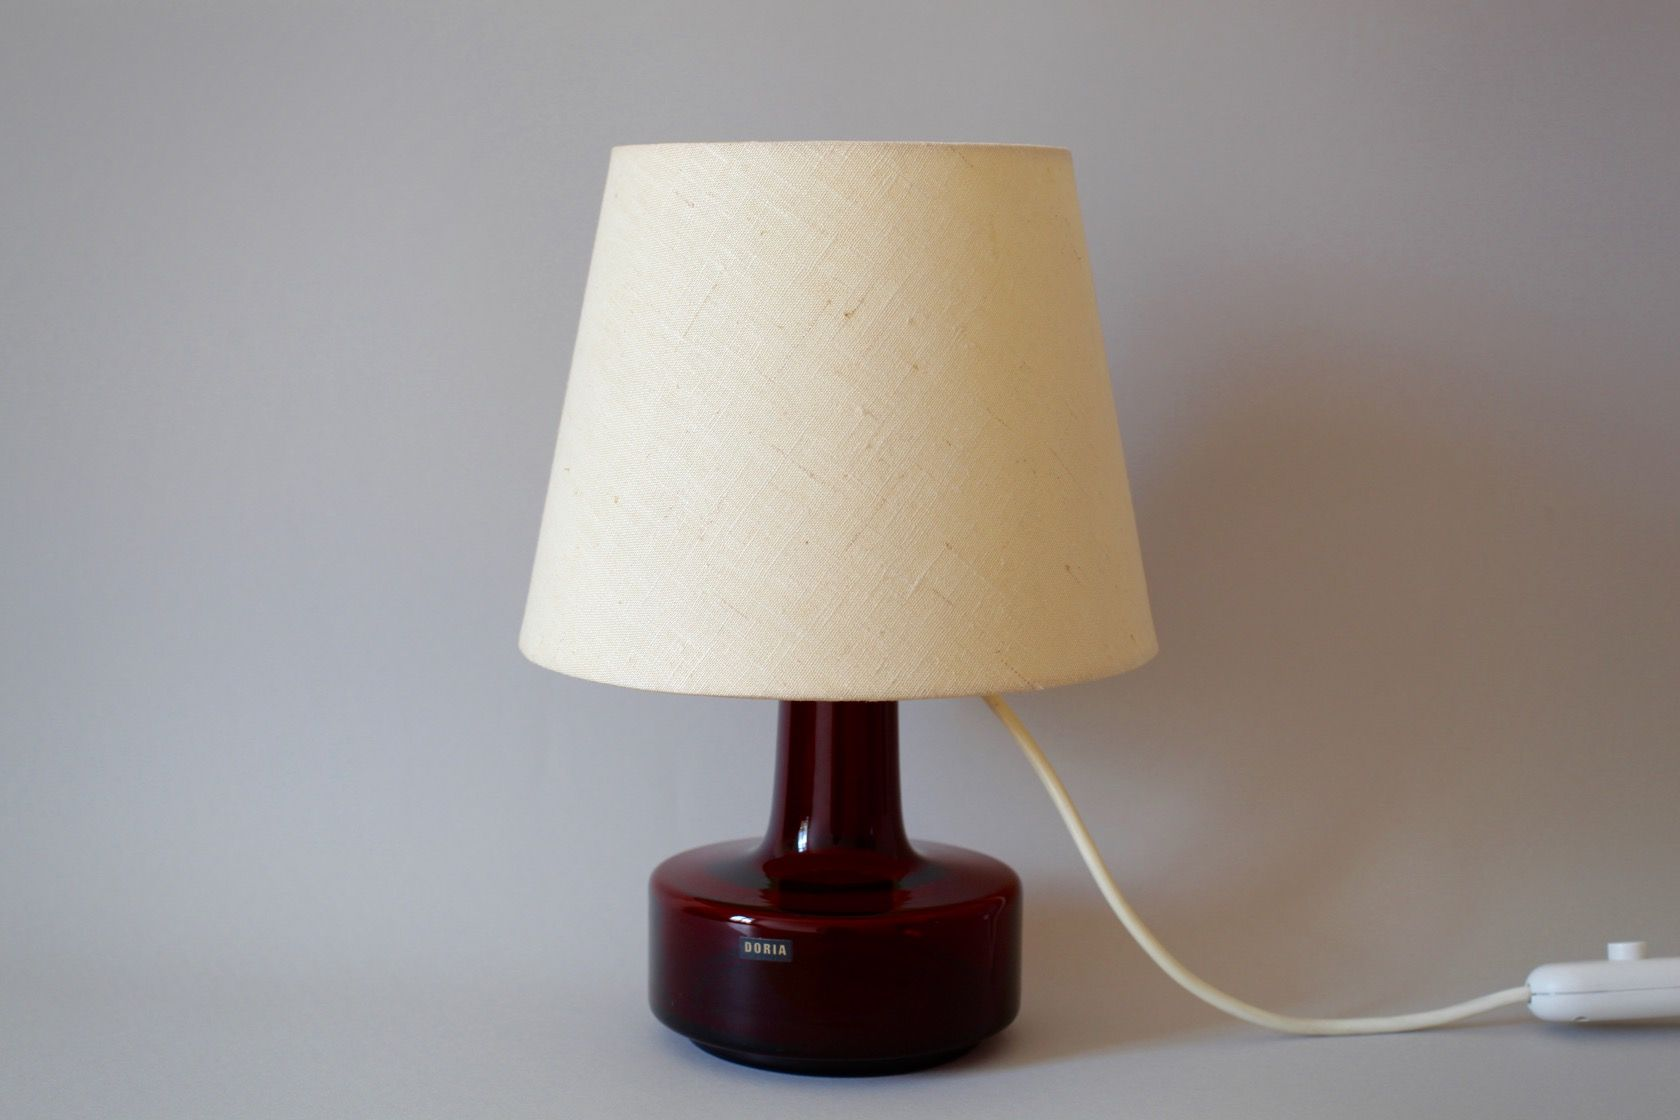 Glass red table lamp - Table Lamp With Red Glass Base From Doria 1960s